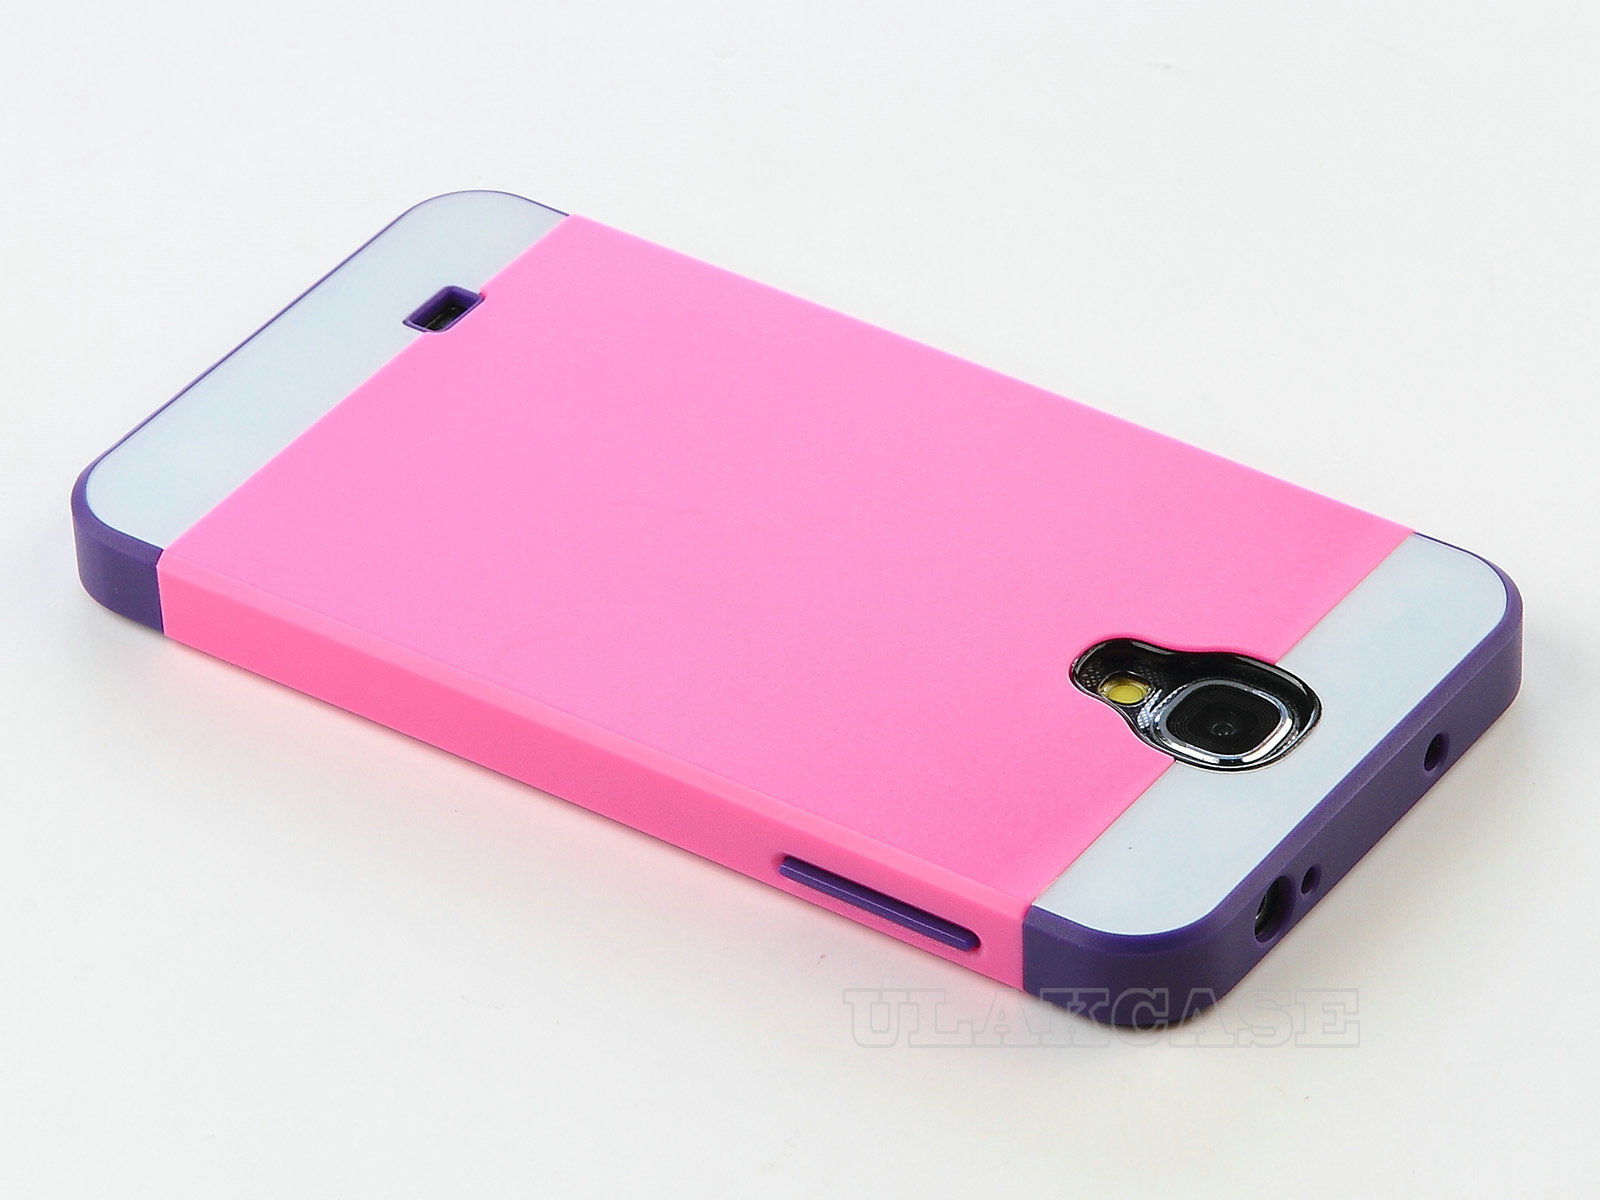 HYBRID SHOCK PROOF CASE COVER FITS SAMSUNG GALAXY S4 I9500 FREE SCREEN PROTECTOR